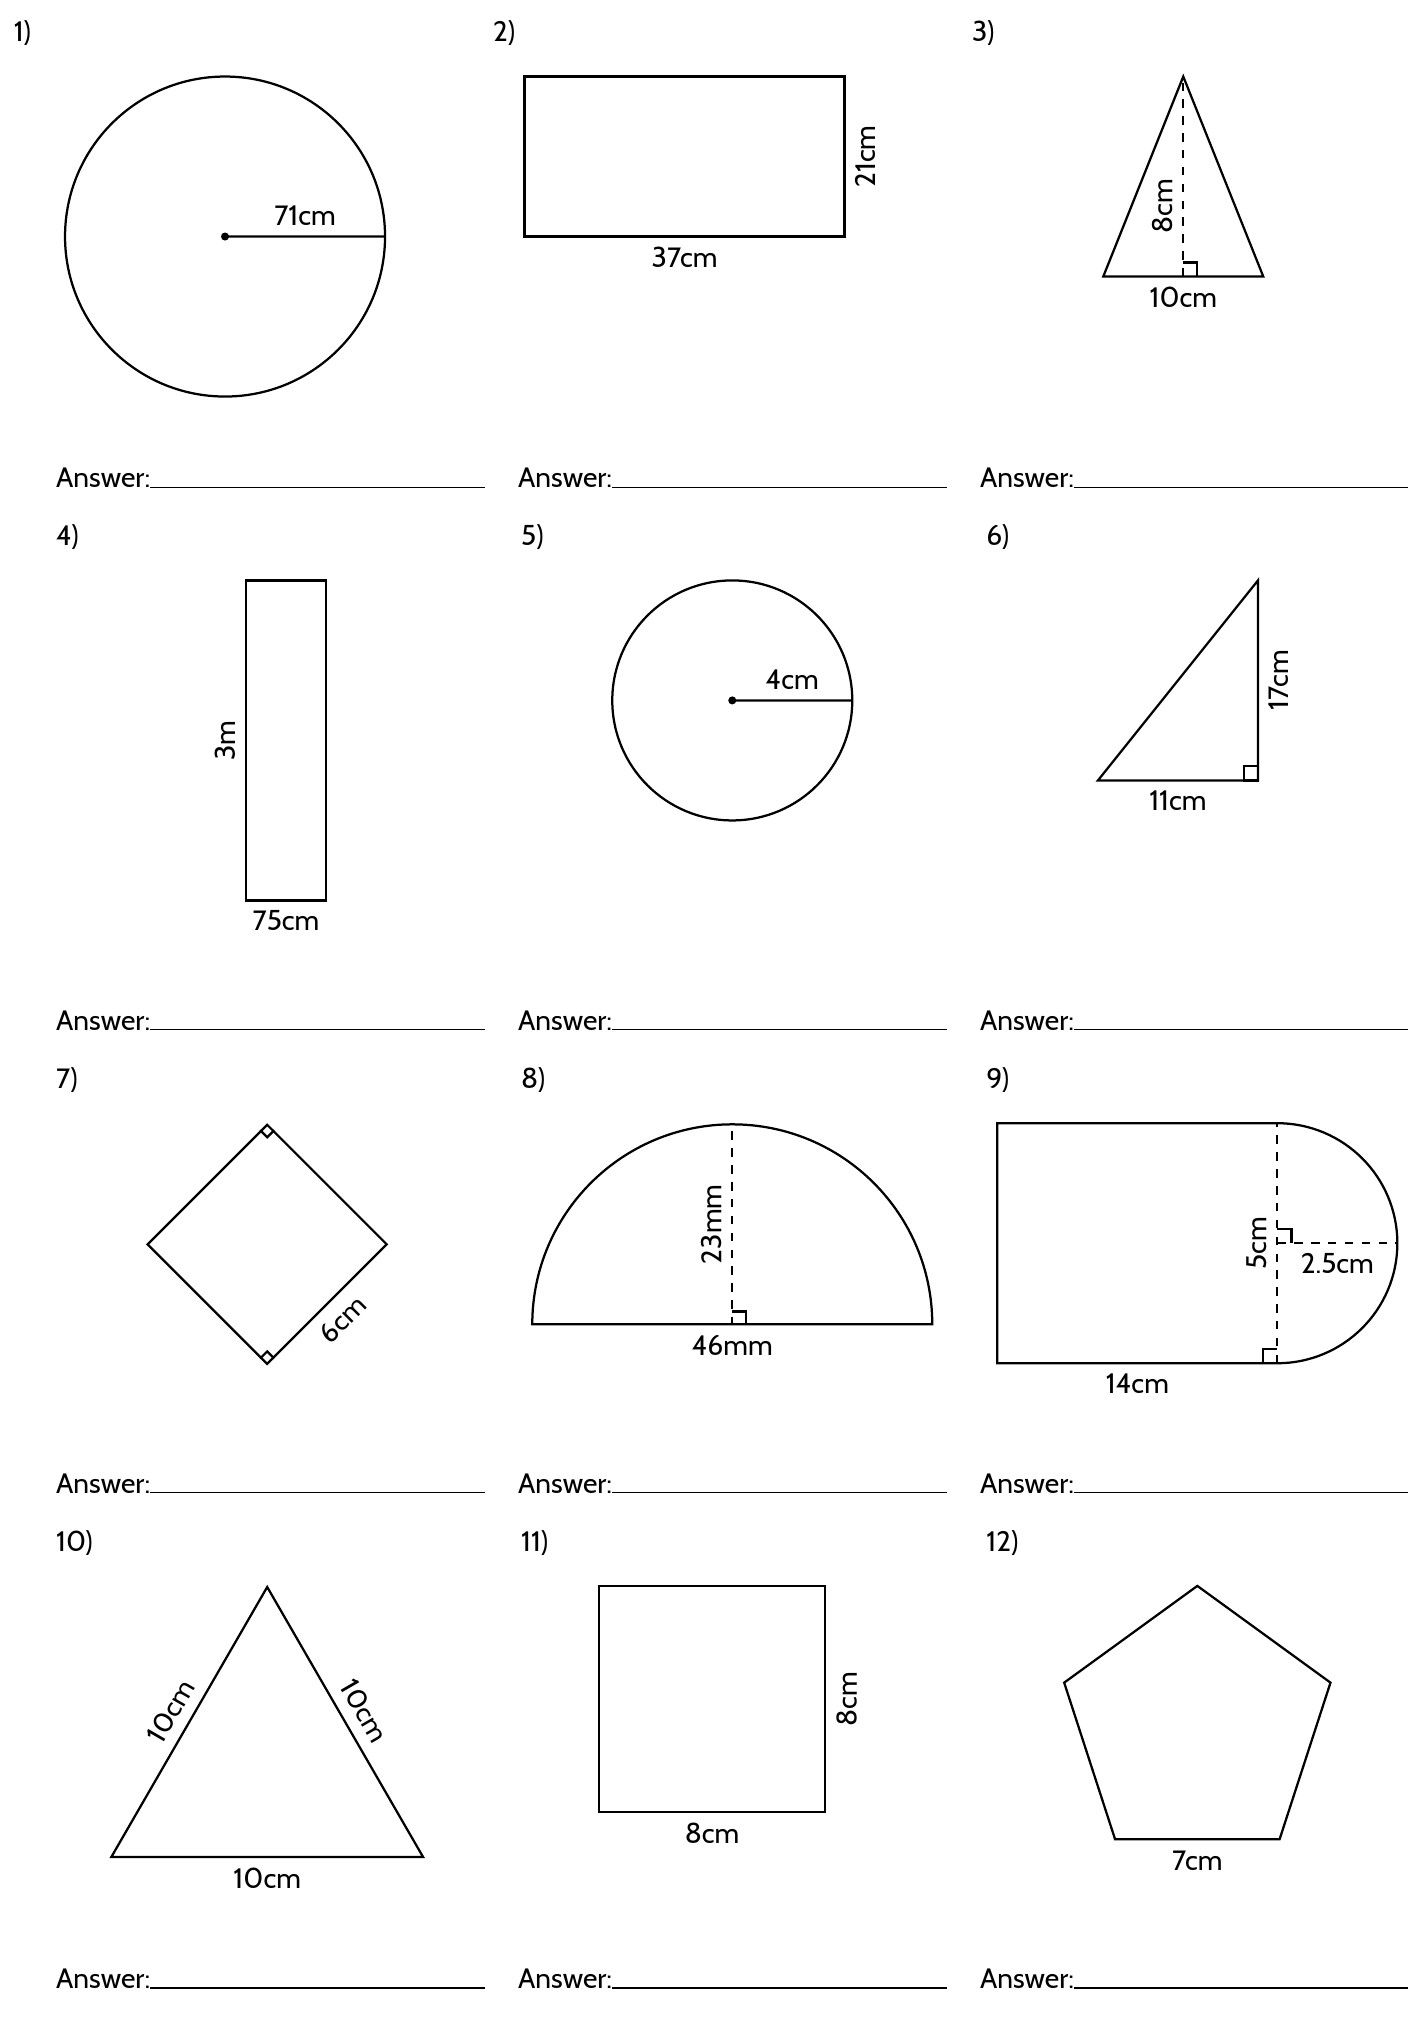 hight resolution of Geomery Volume 6th Grade Worksheets   Printable Worksheets and Activities  for Teachers